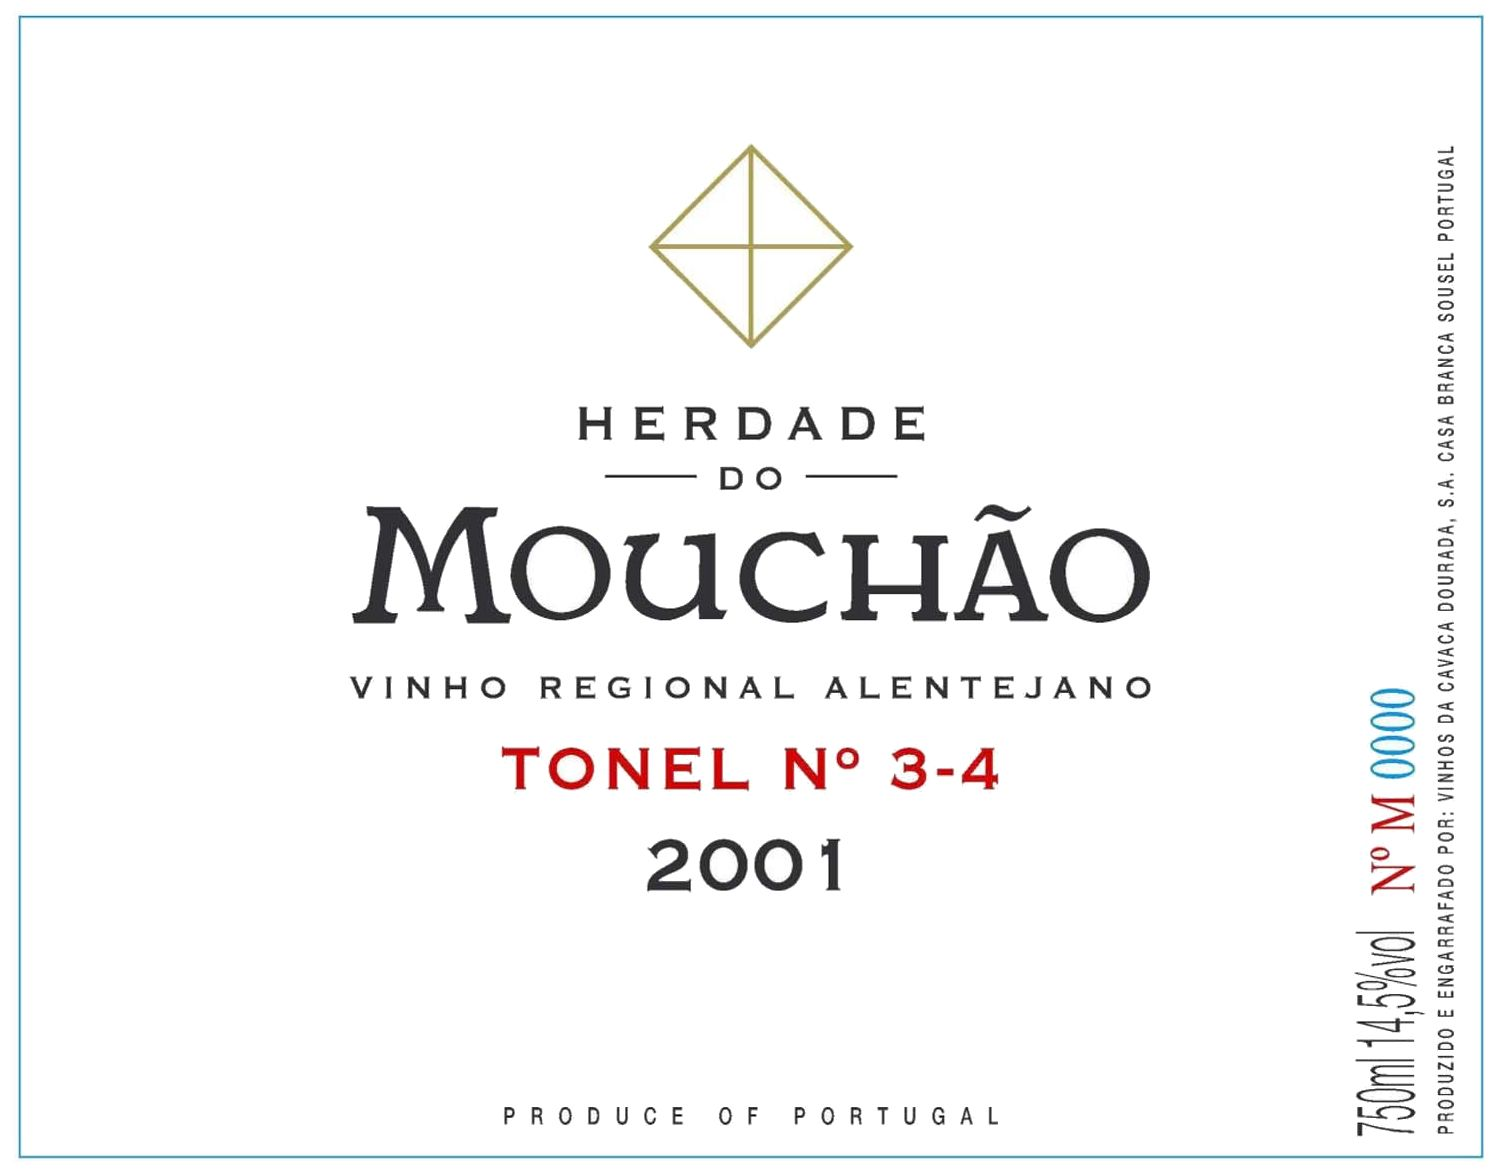 Herdade do Mouchao Tonel 3-4 2001 Front Label